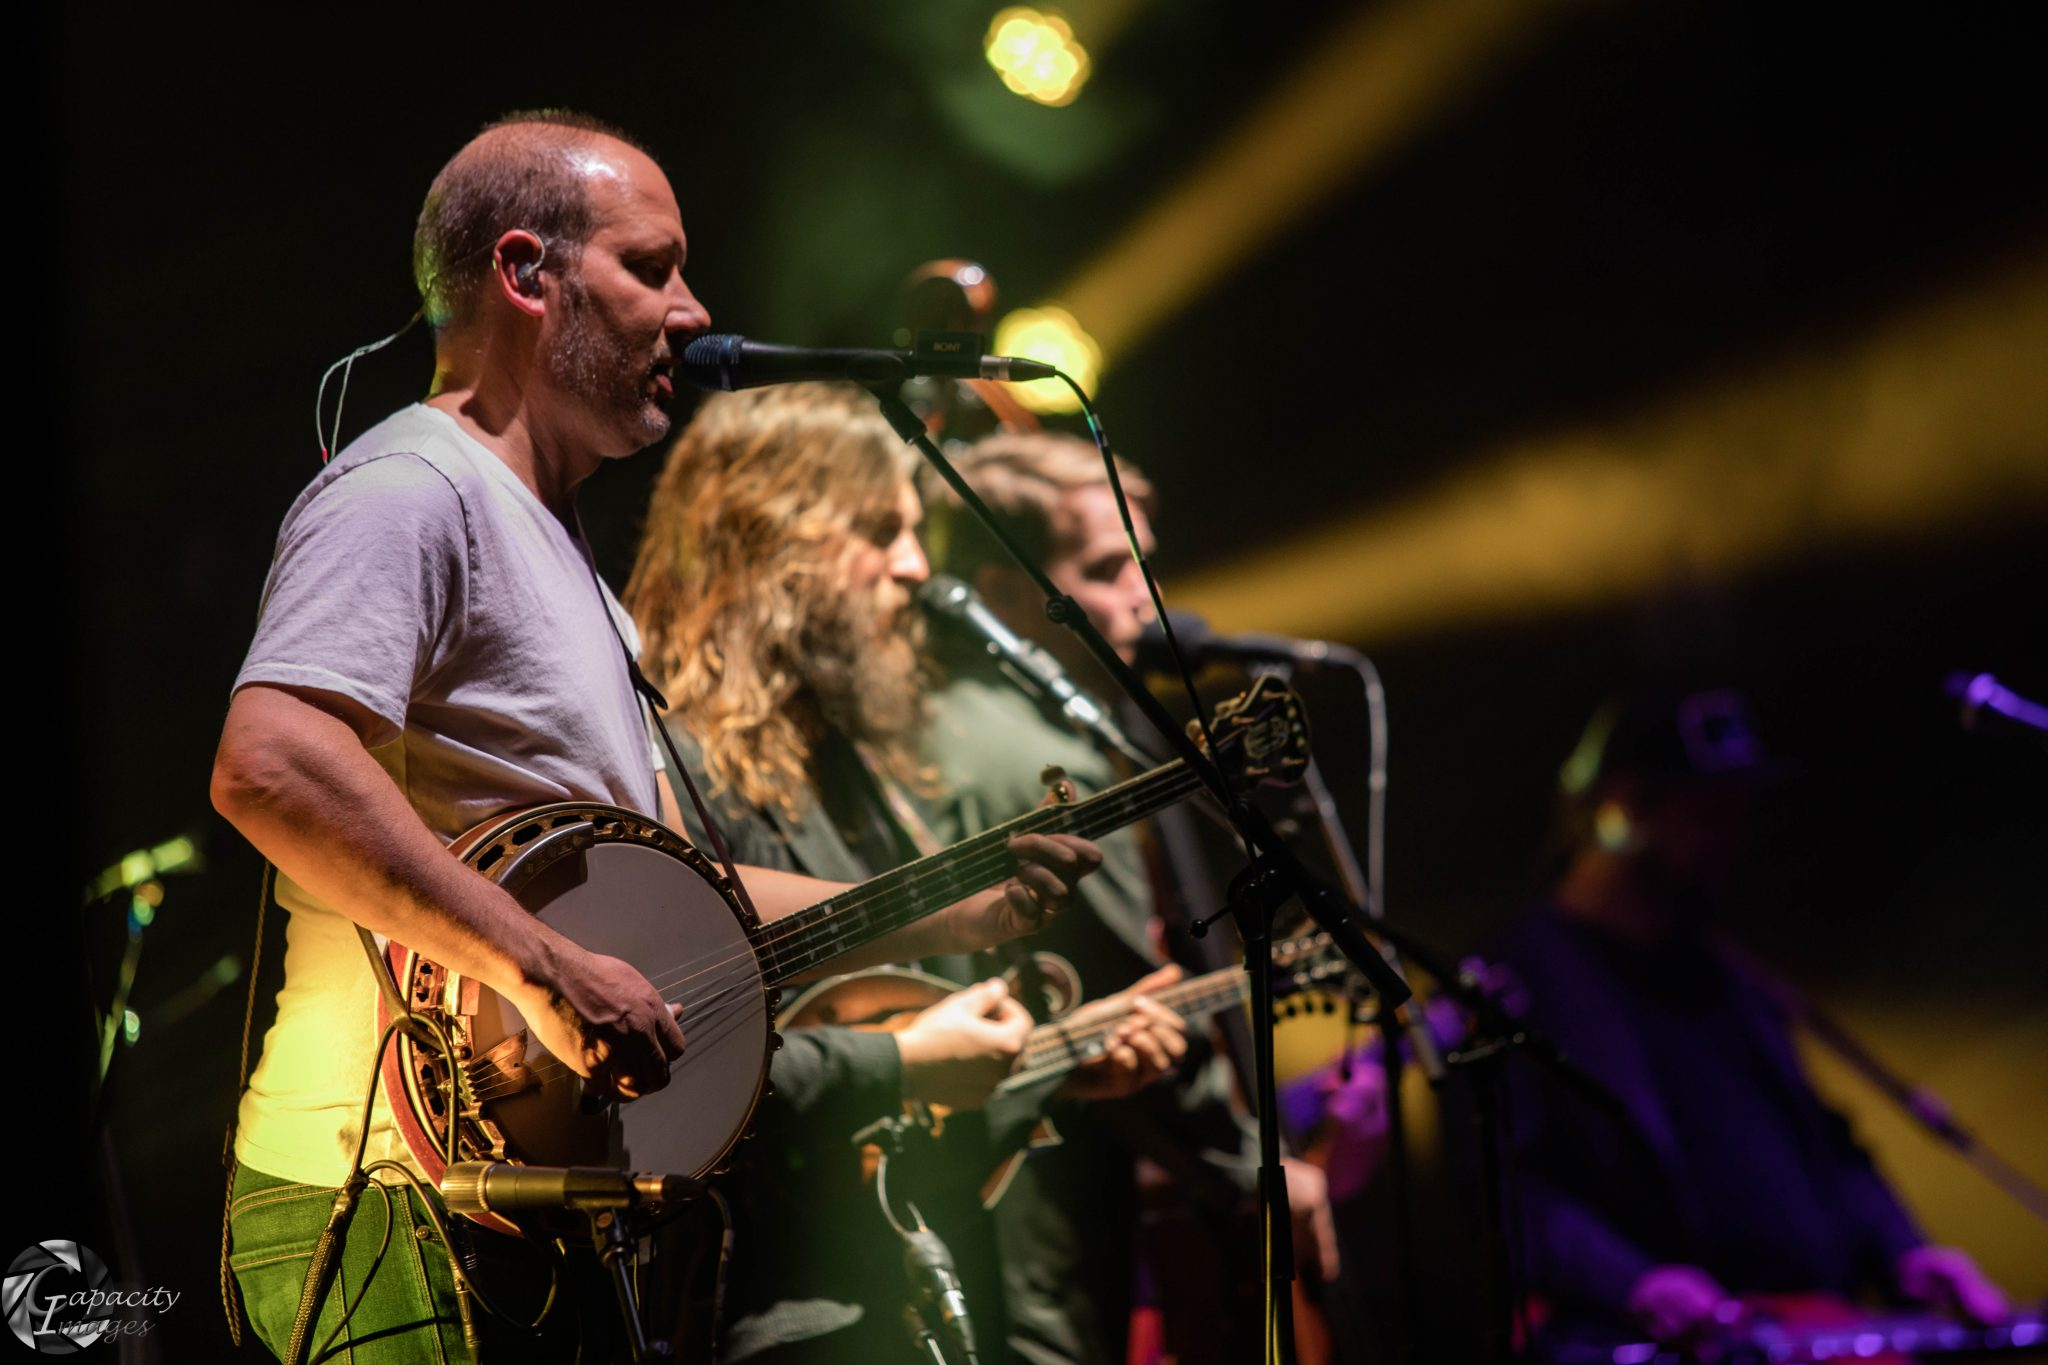 Greensky Bluegrass Covers Hendrix, Allman Brothers At Beacon Theatre [Photos/Videos]